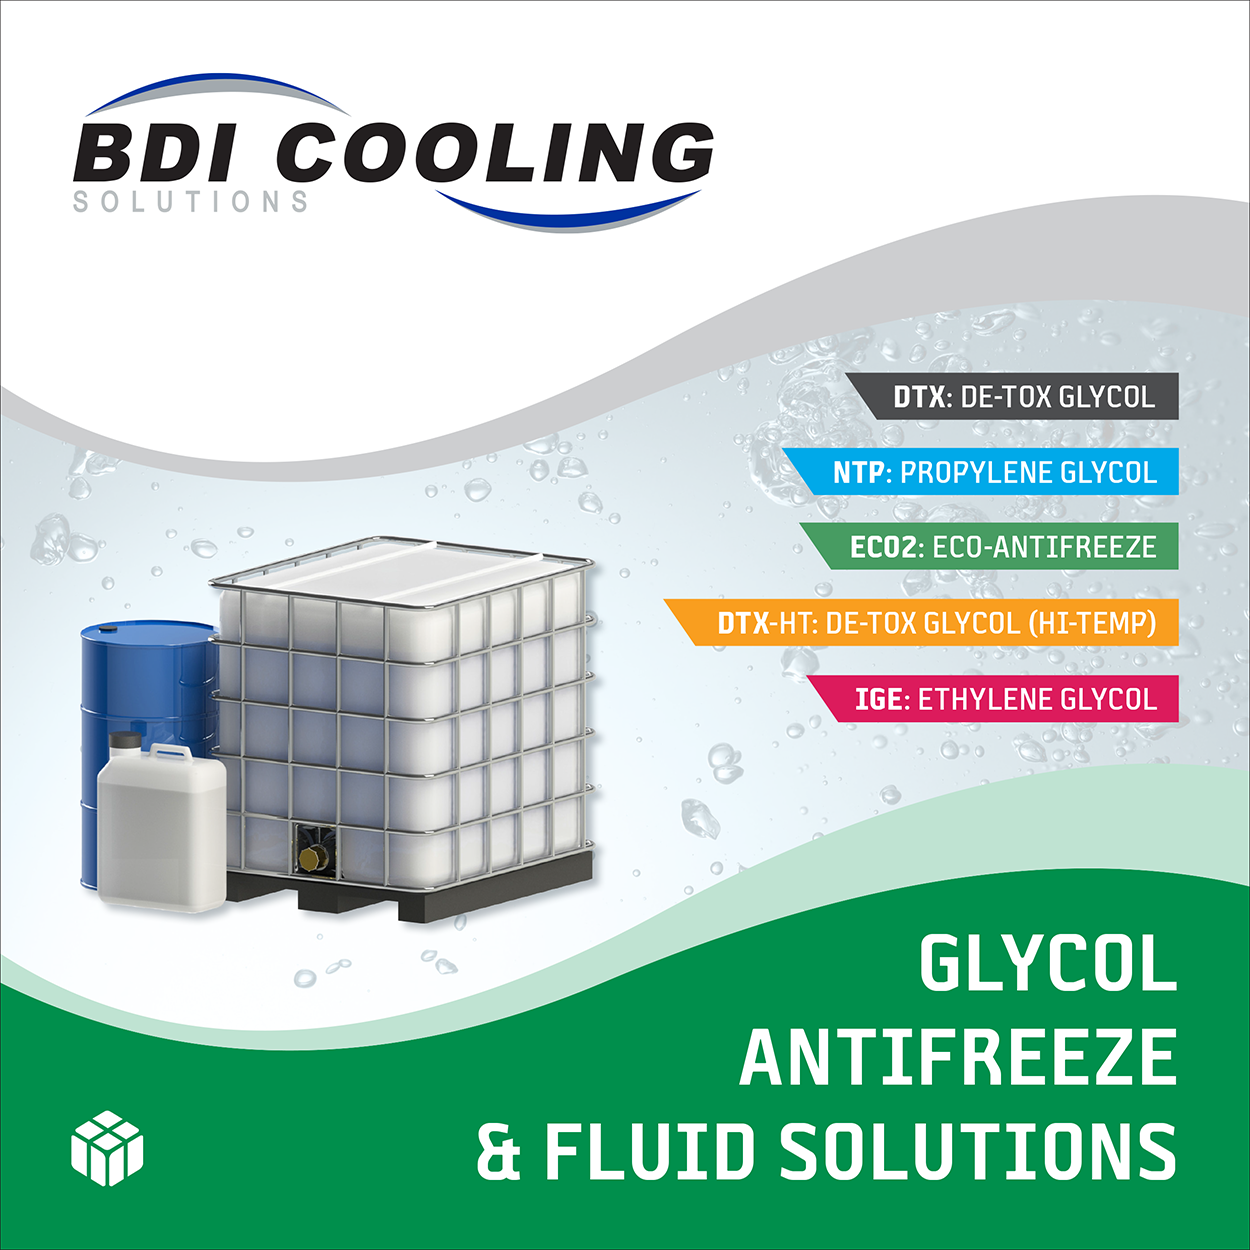 Glycol Antifreeze Fluid Solutions